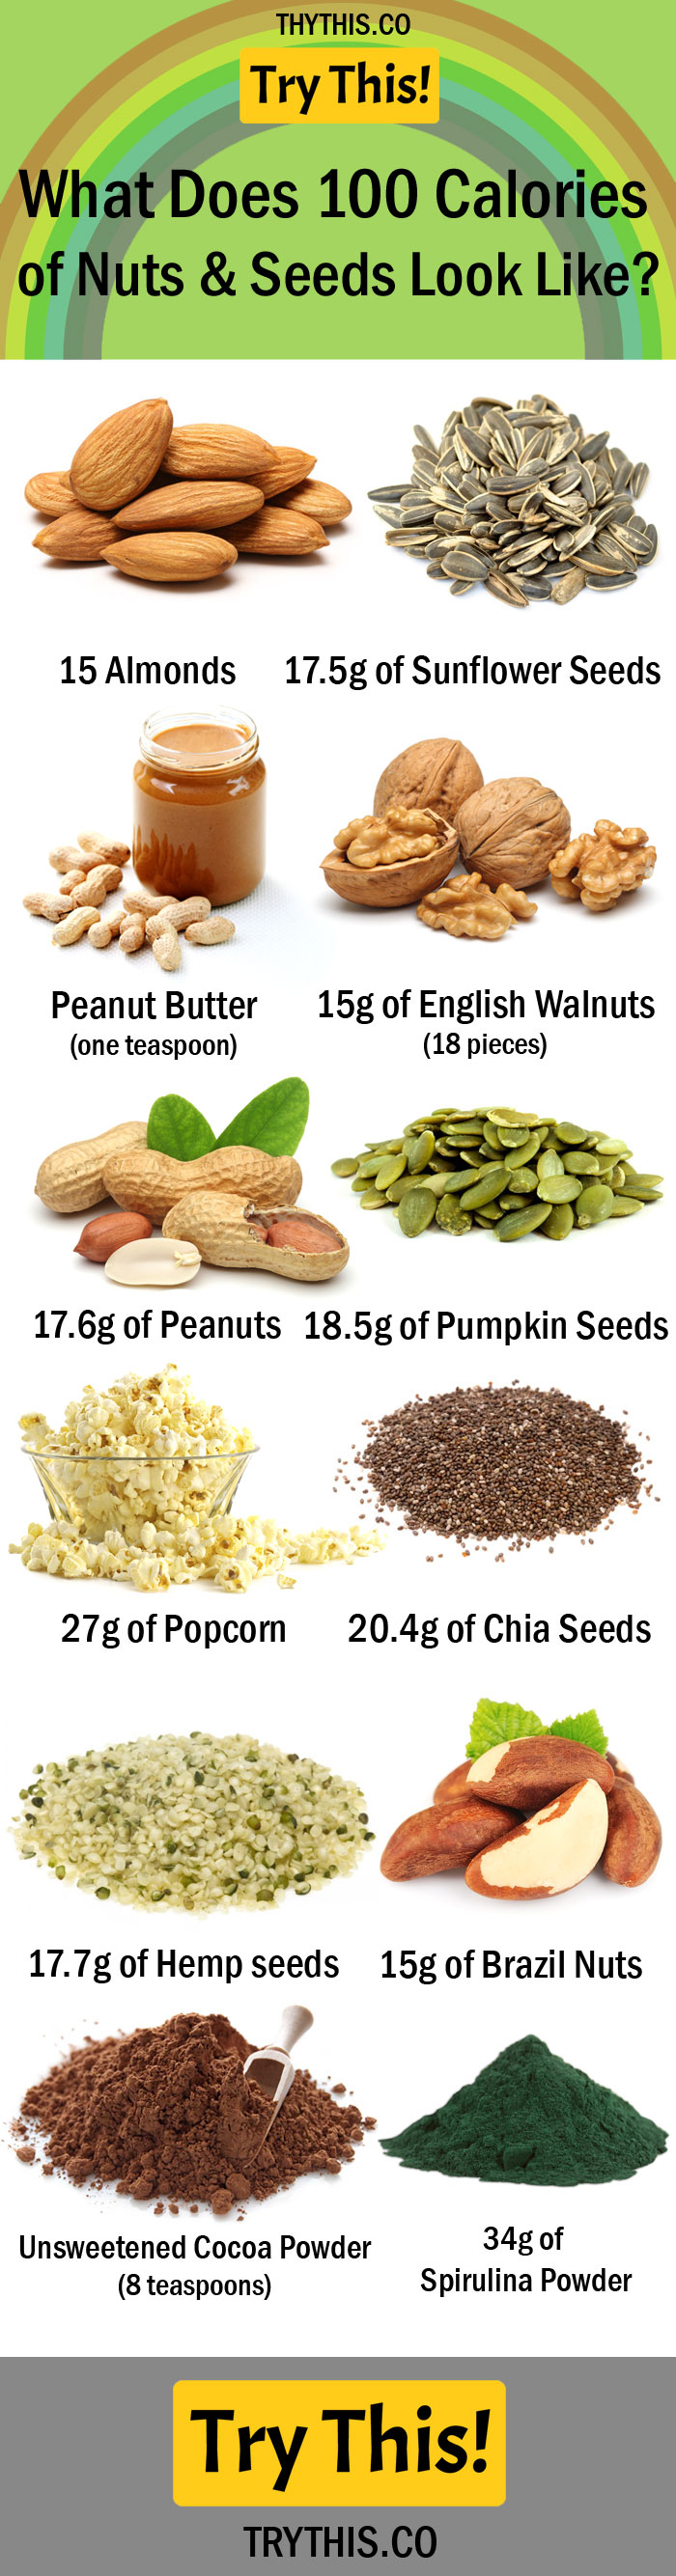 What Does 100 Calories of Nuts & Seeds Look Like?